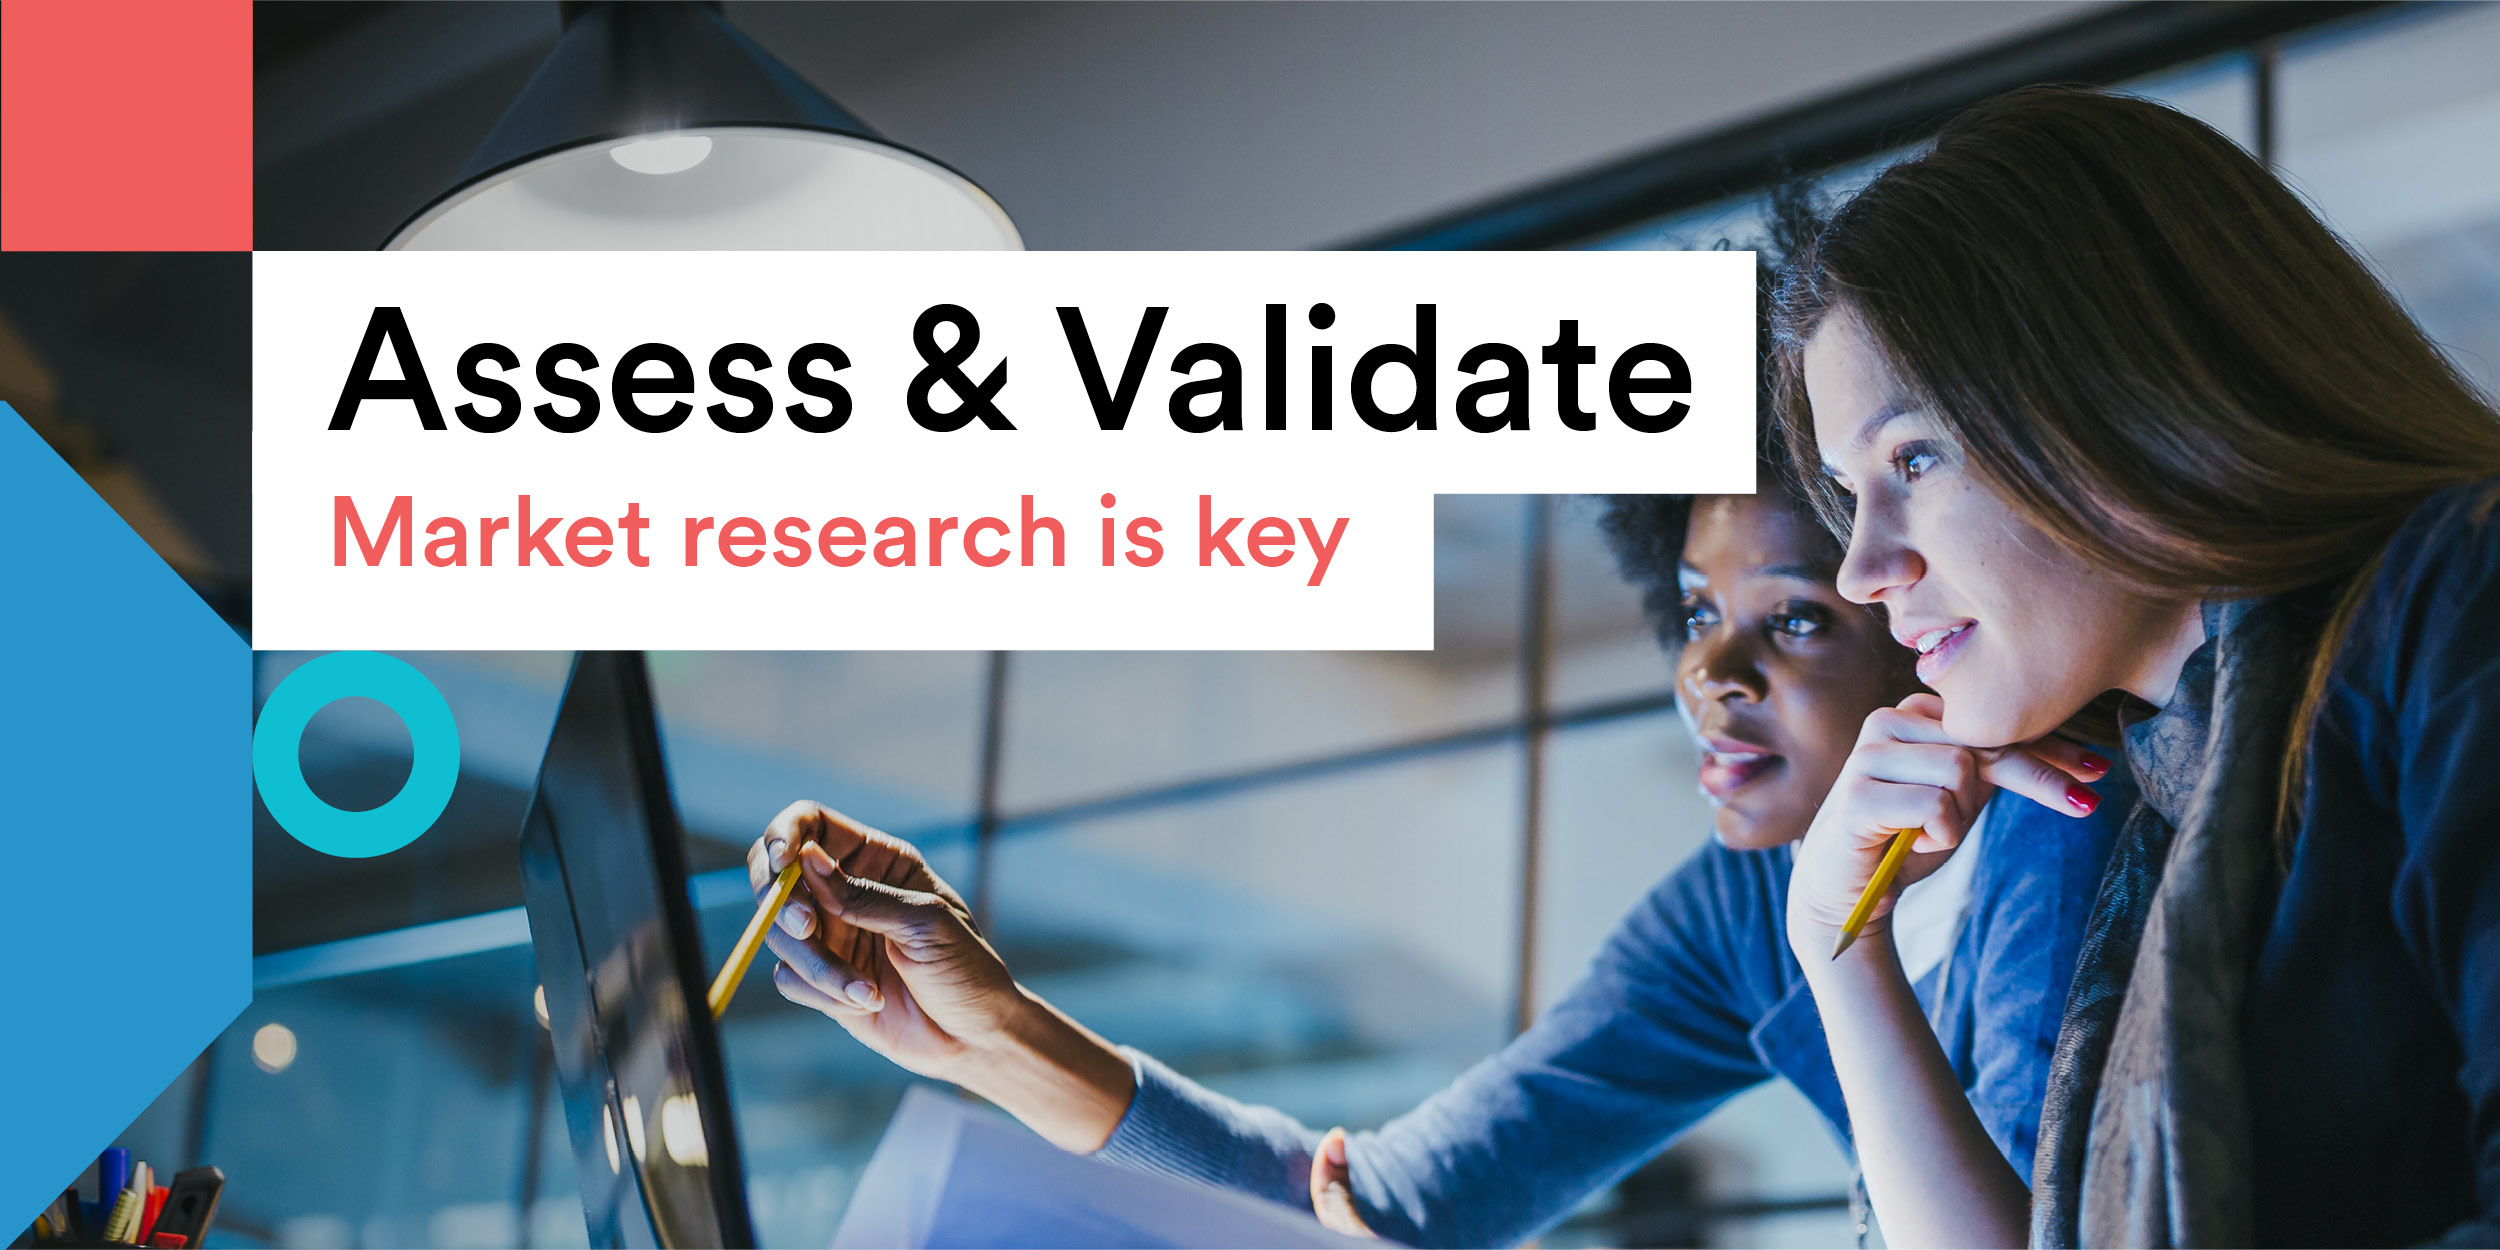 Assess & Validate title and business people